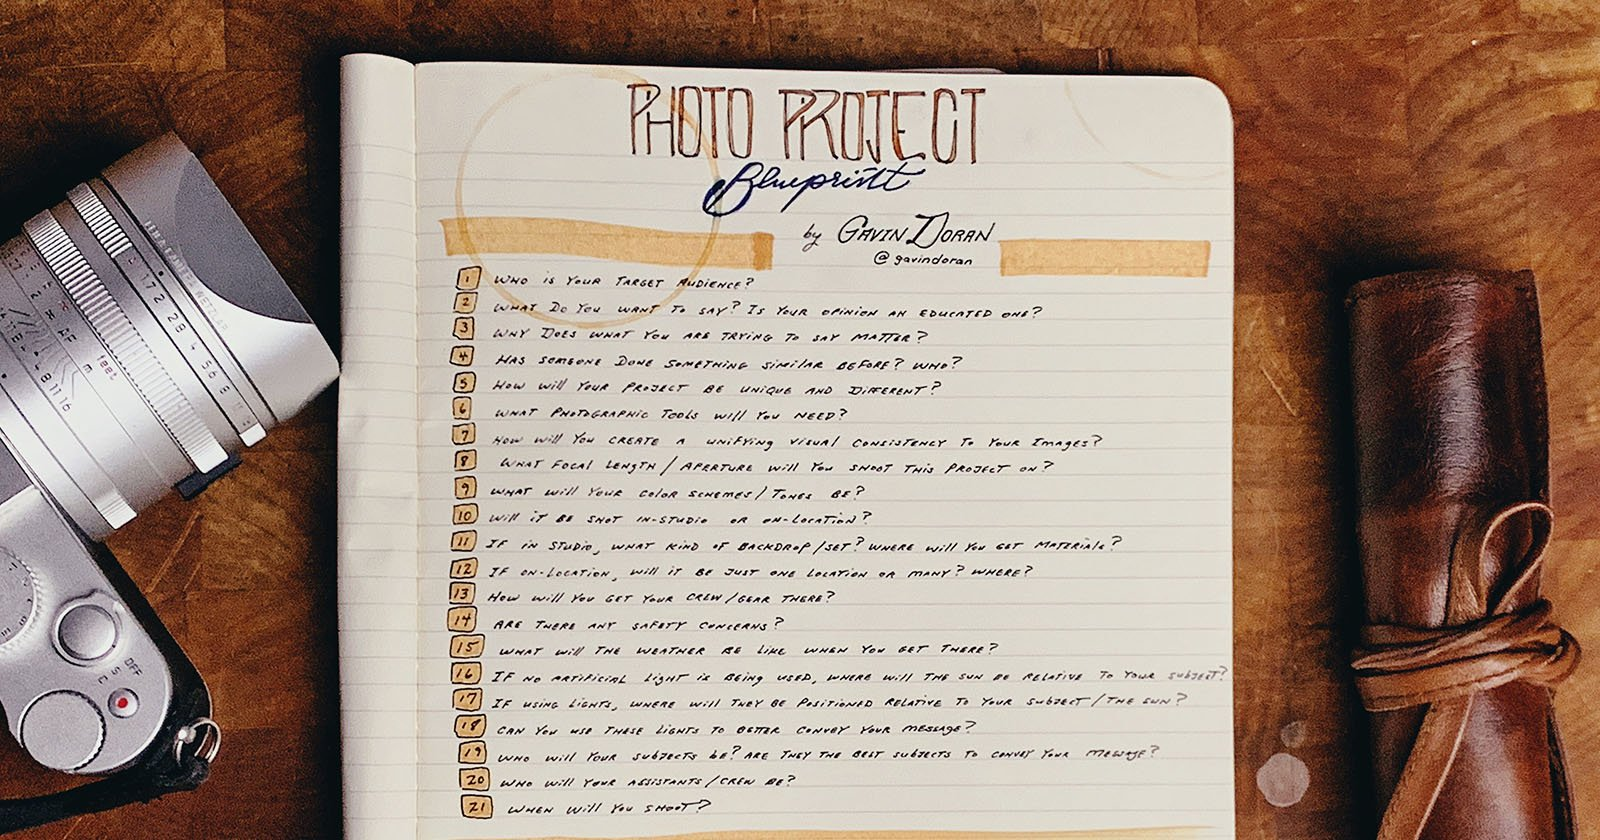 A Photo Project Blueprint: 21 Questions to Ask Before Starting